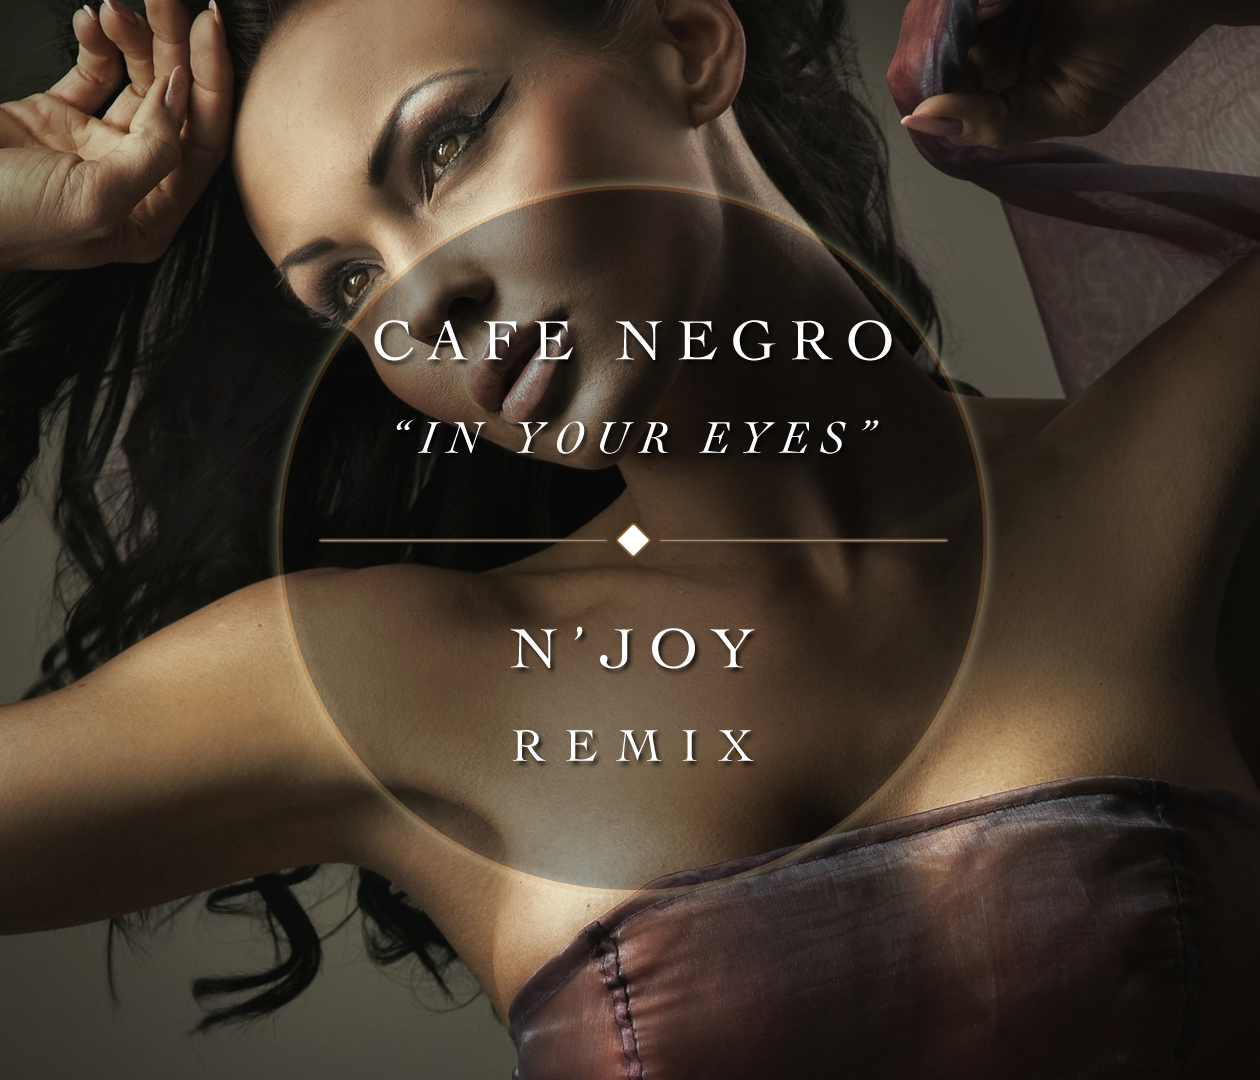 Cafe Negro - In Your Eyes (N'Joy Remix)